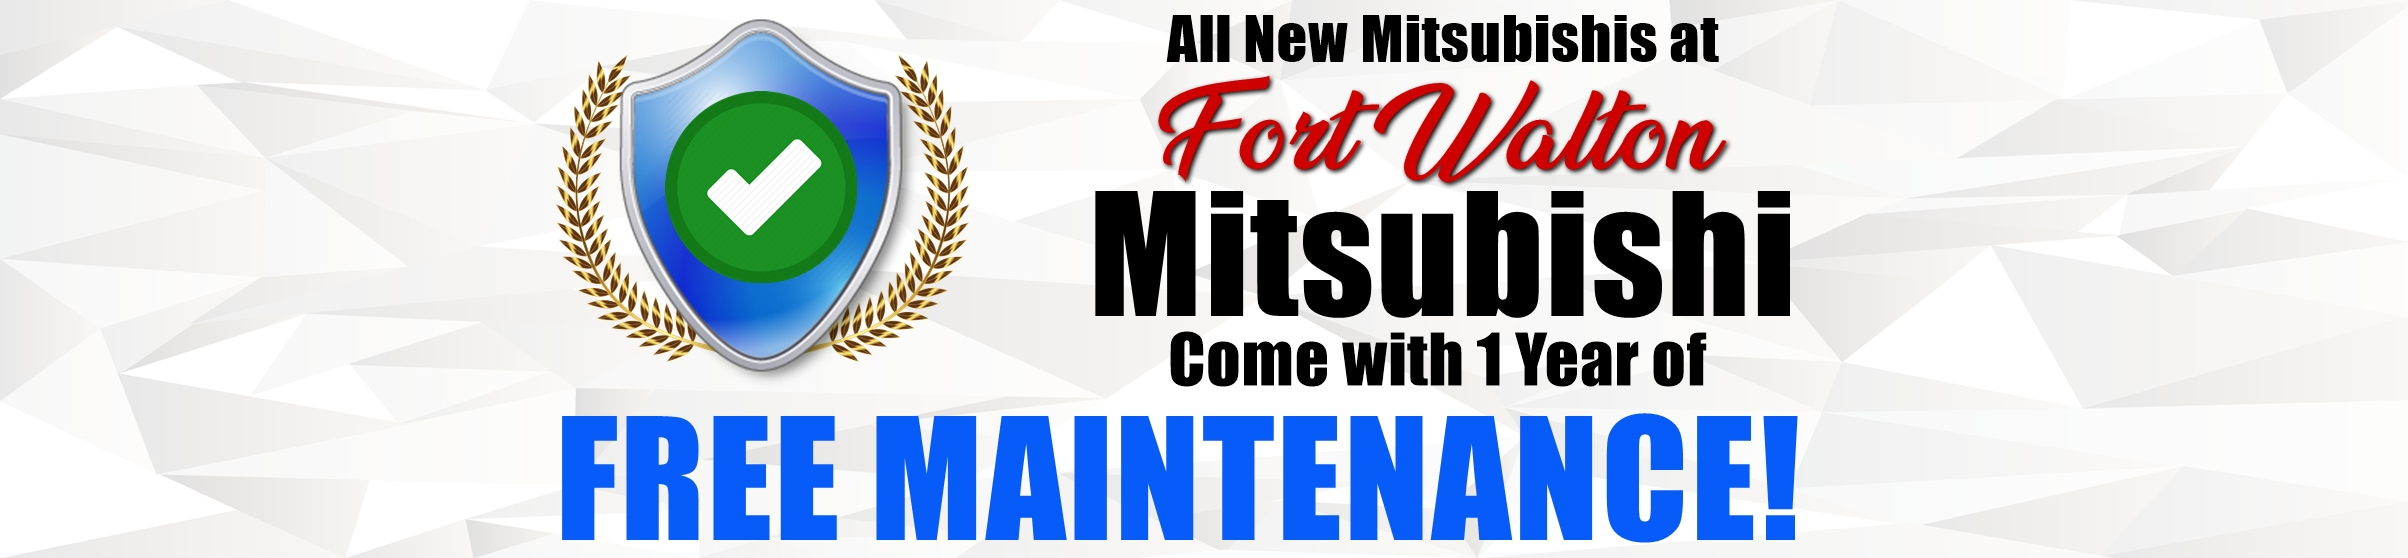 New and used mitsubishi dealer fort walton beach fort walton schedule your next service appointment fort walton solutioingenieria Image collections